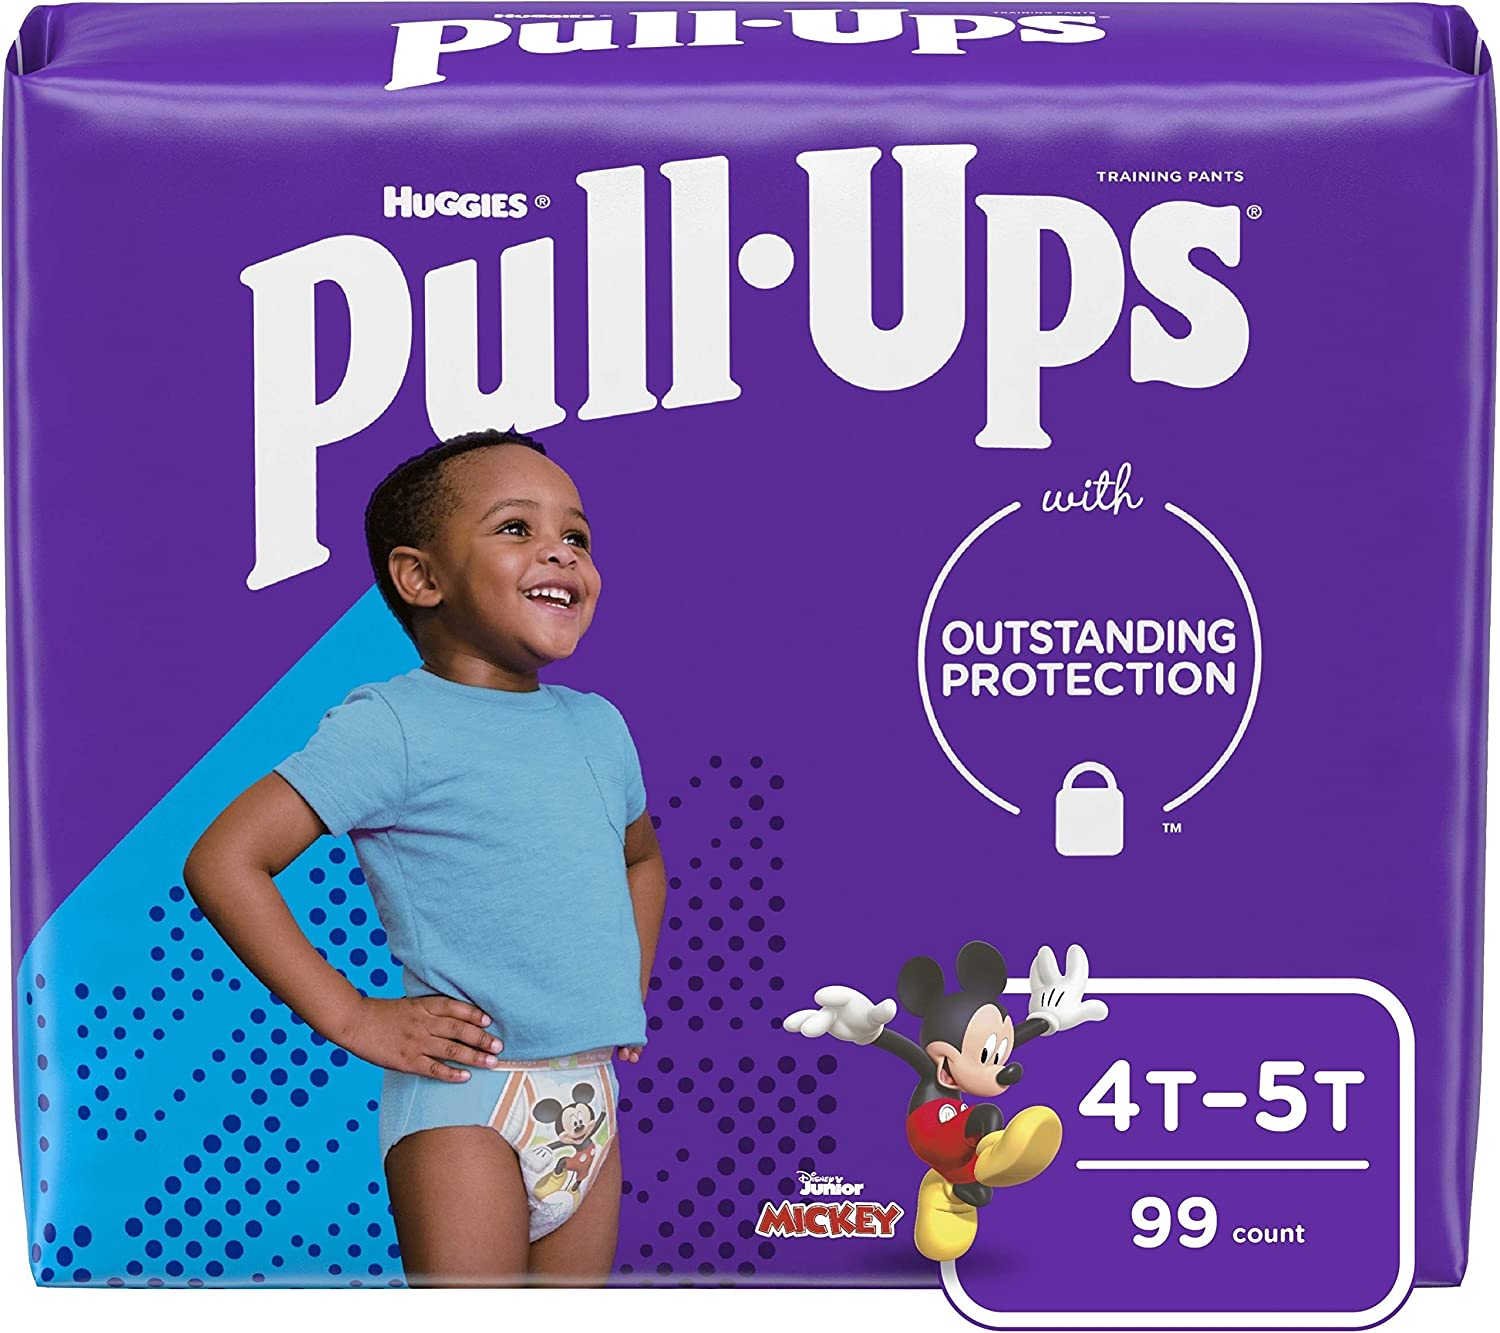 Pull-Ups Learning Designs Boys' Training Pants, 4T-5T, 99 Ct